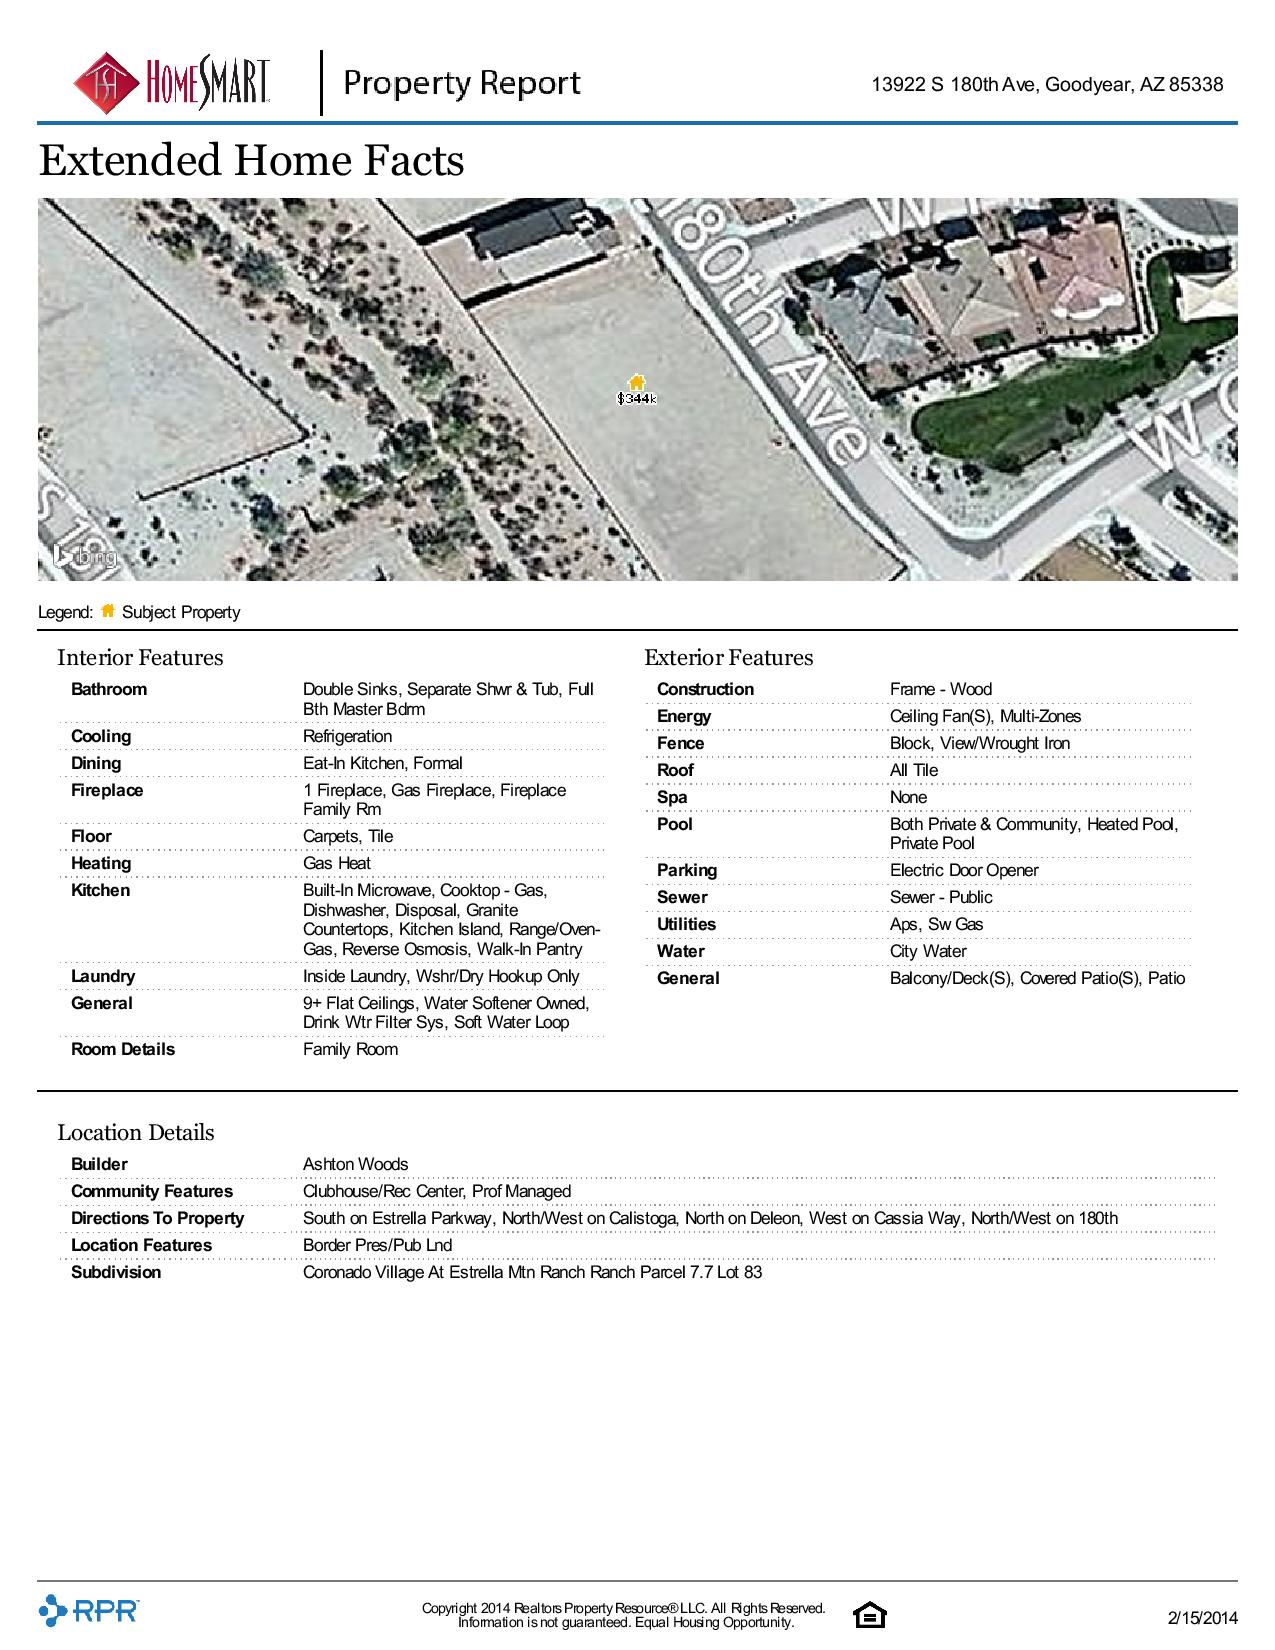 13922-S-180th-Ave-Goodyear-AZ-85338-page-004